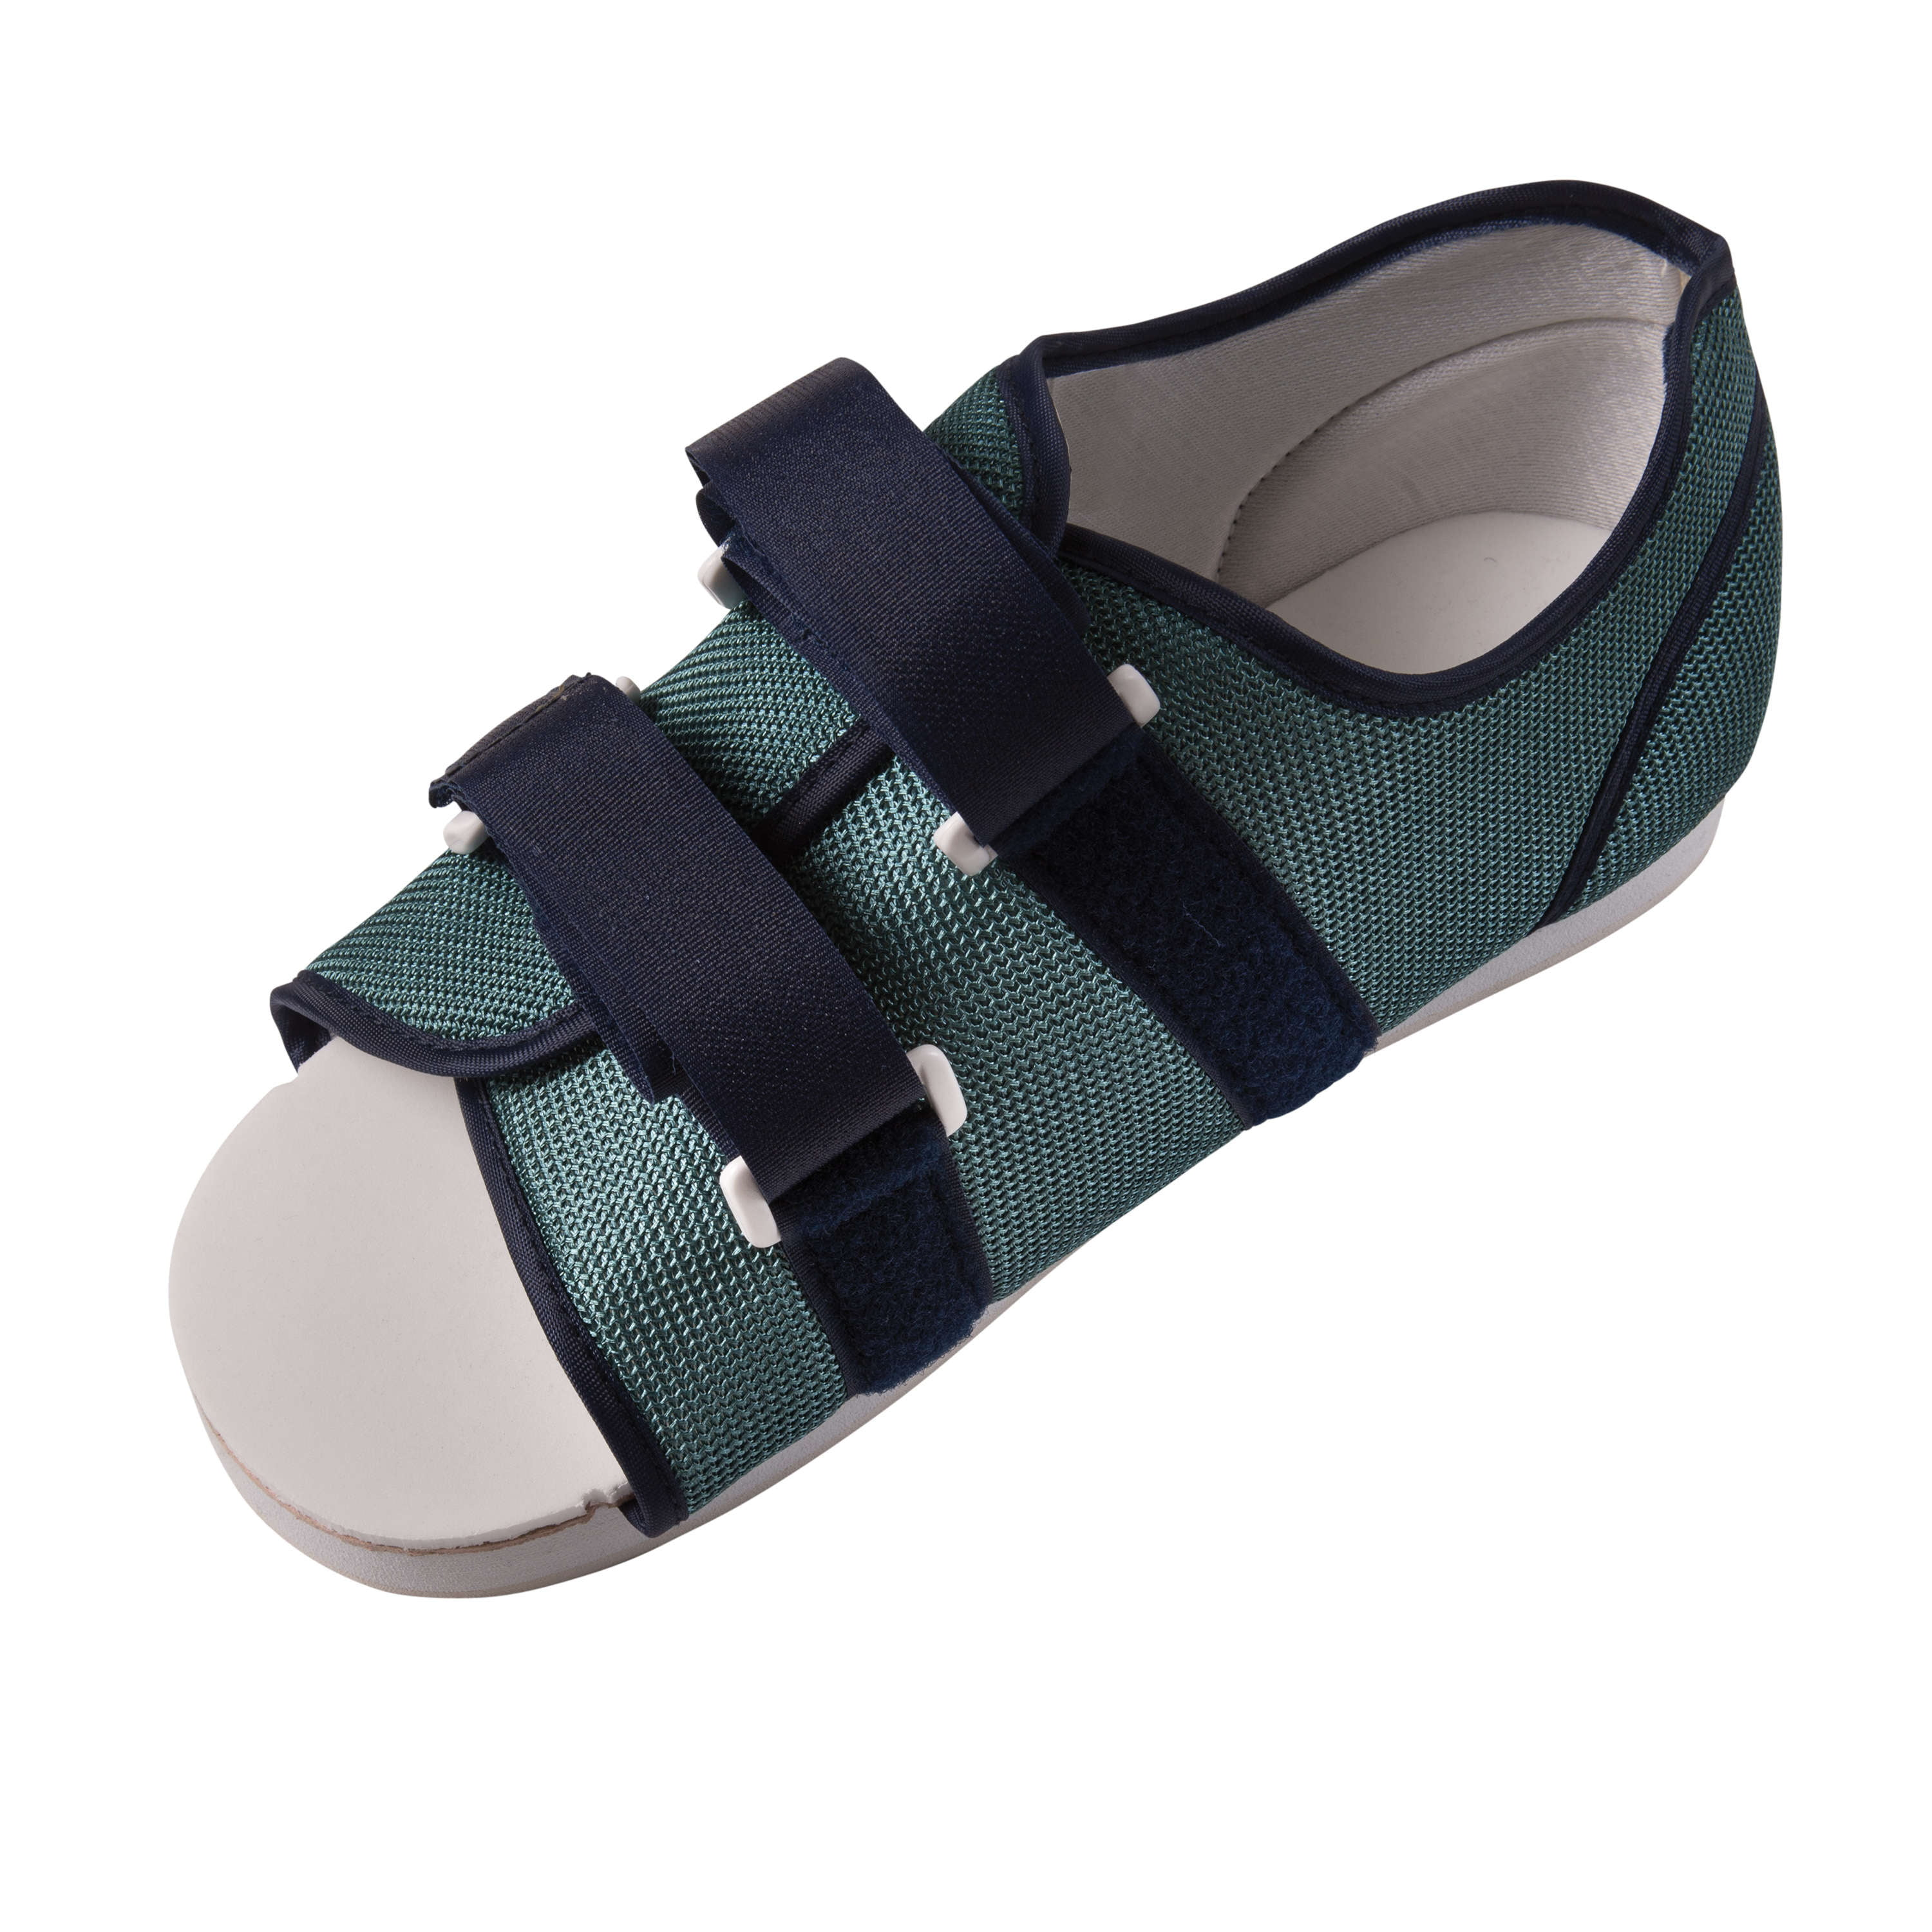 cc13a65616bc DMI Walking Boot for Stress Fracture